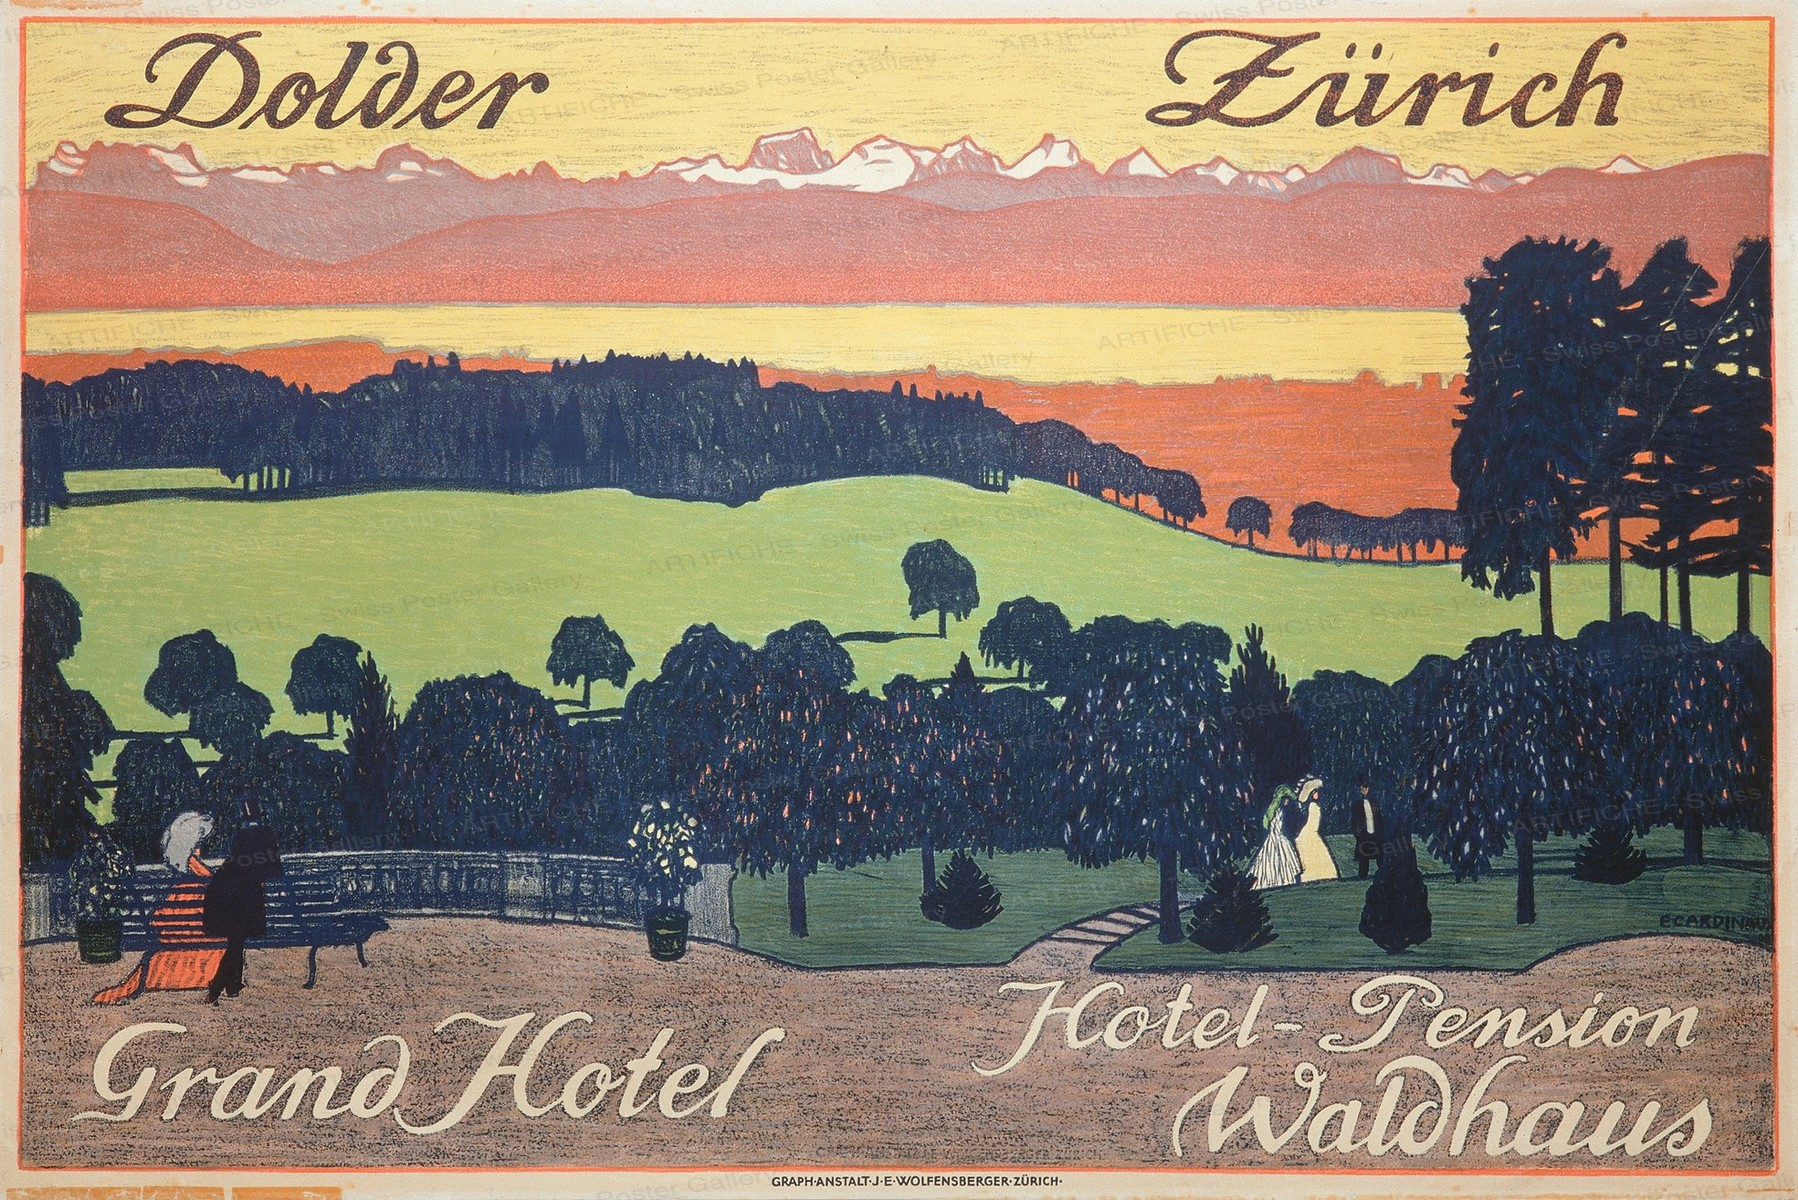 The Grand Hotel Dolder, Emil Cardinaux